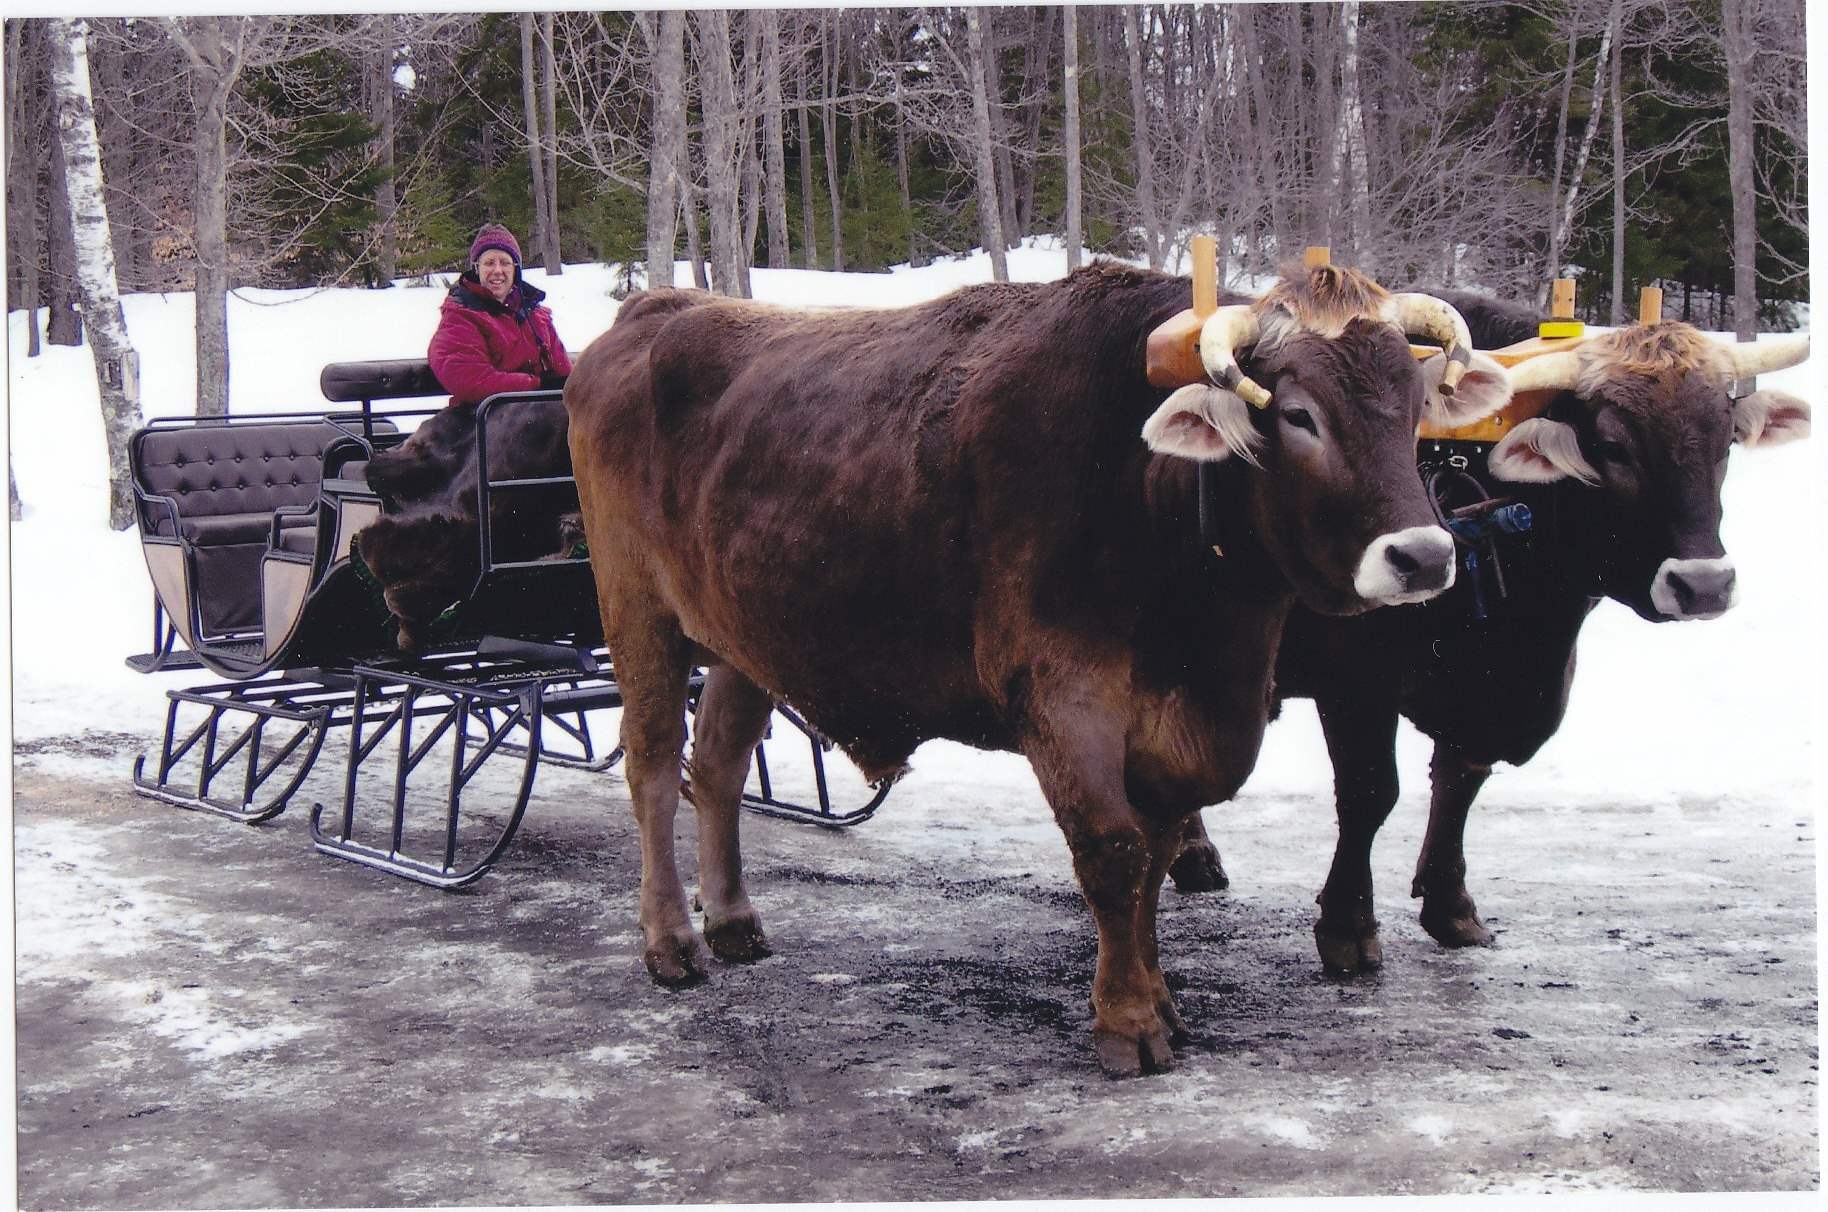 Cow Pulling Wagon : Mikey the awesome cow who thinks she s a dog pics